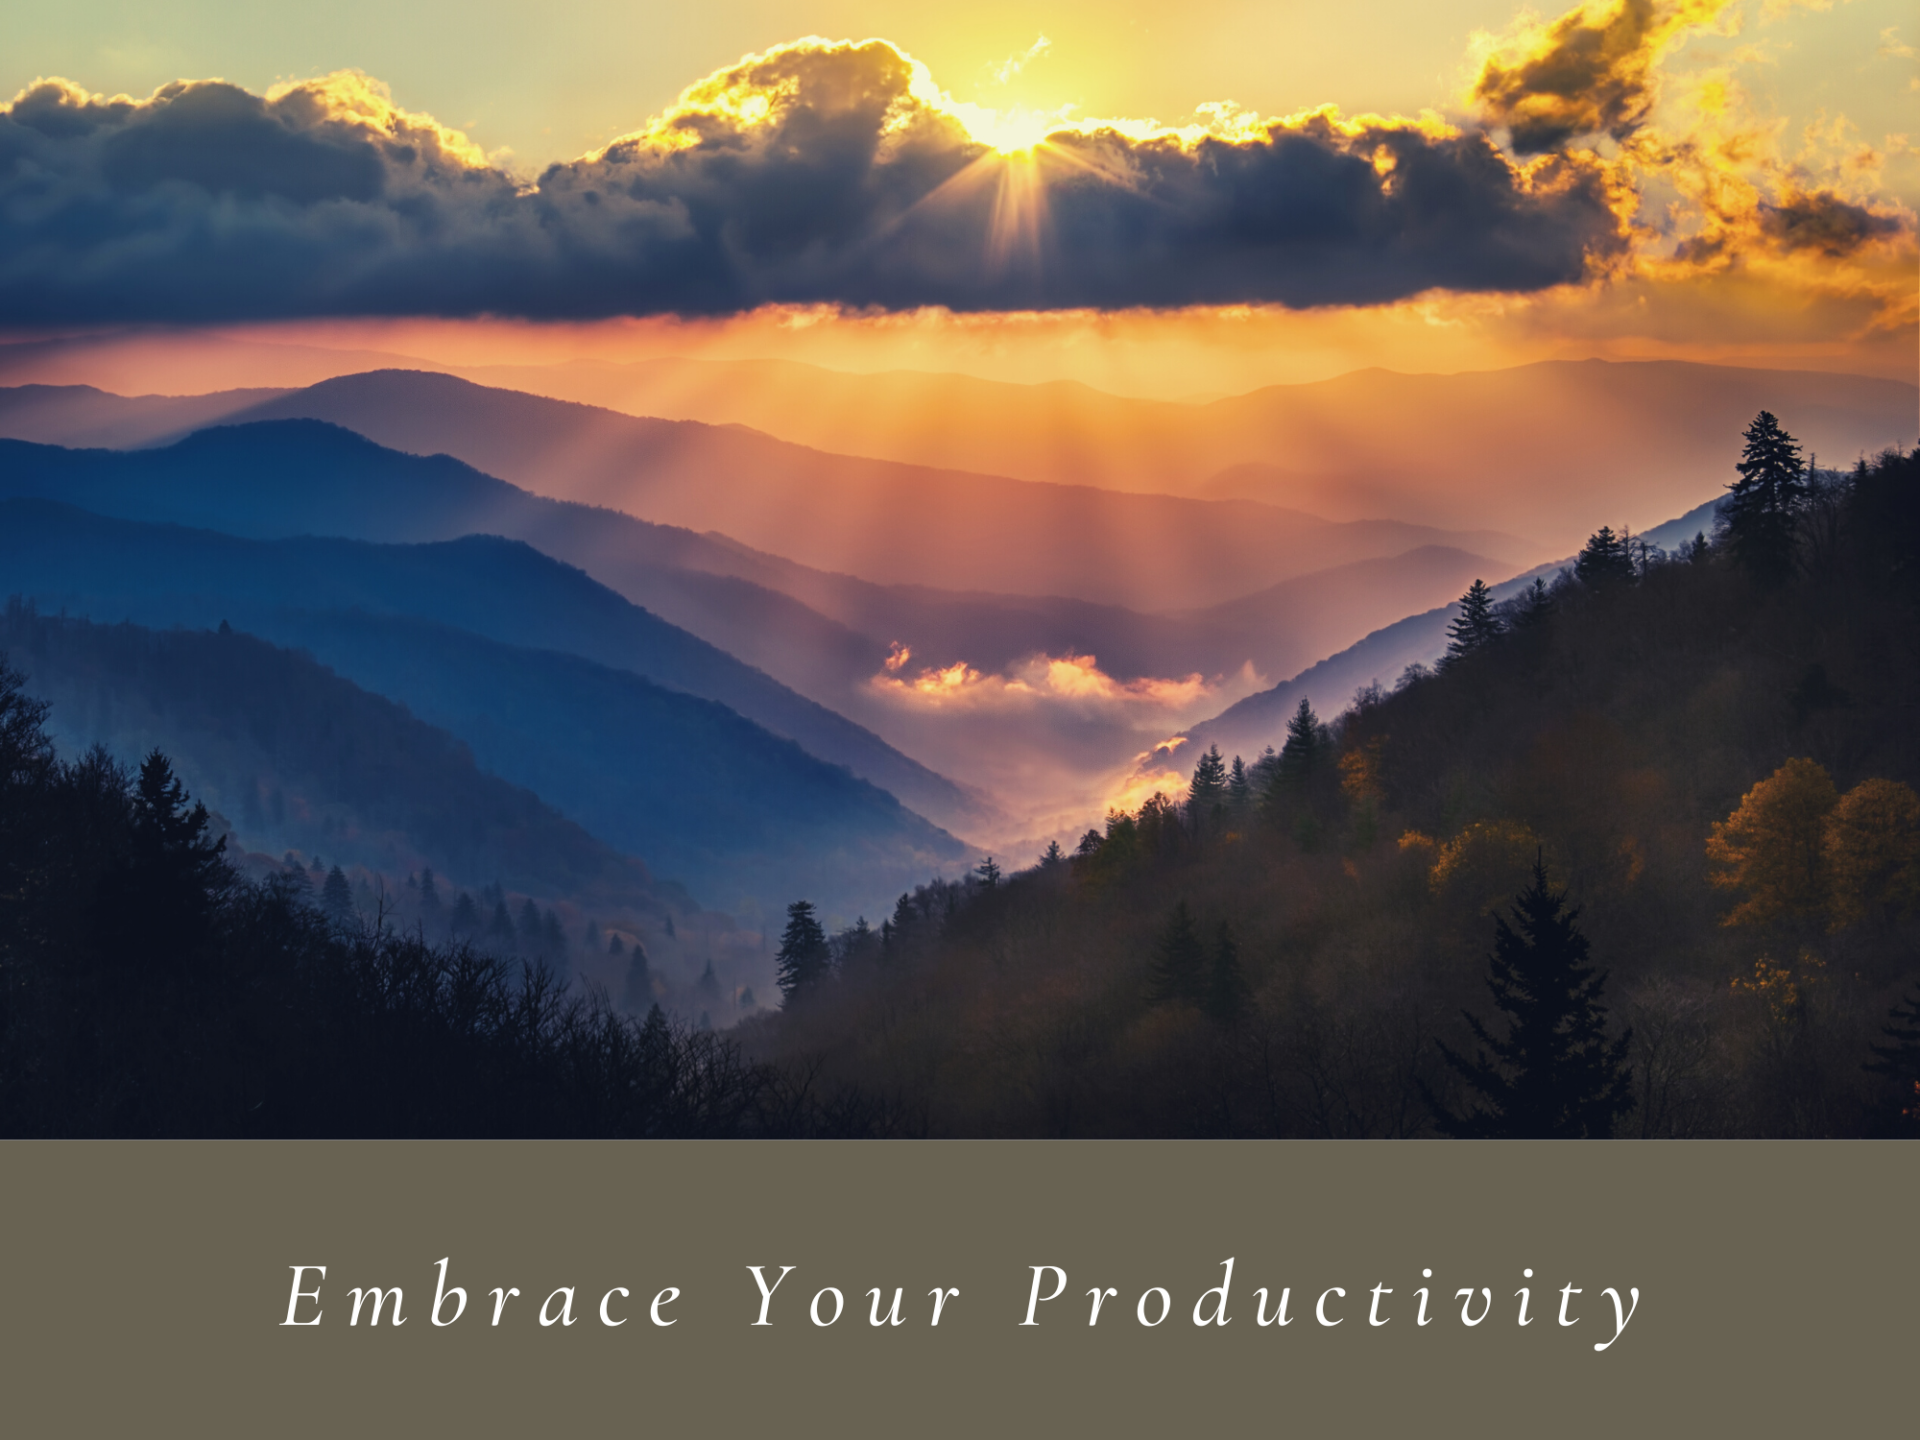 Embrace Your Productivity